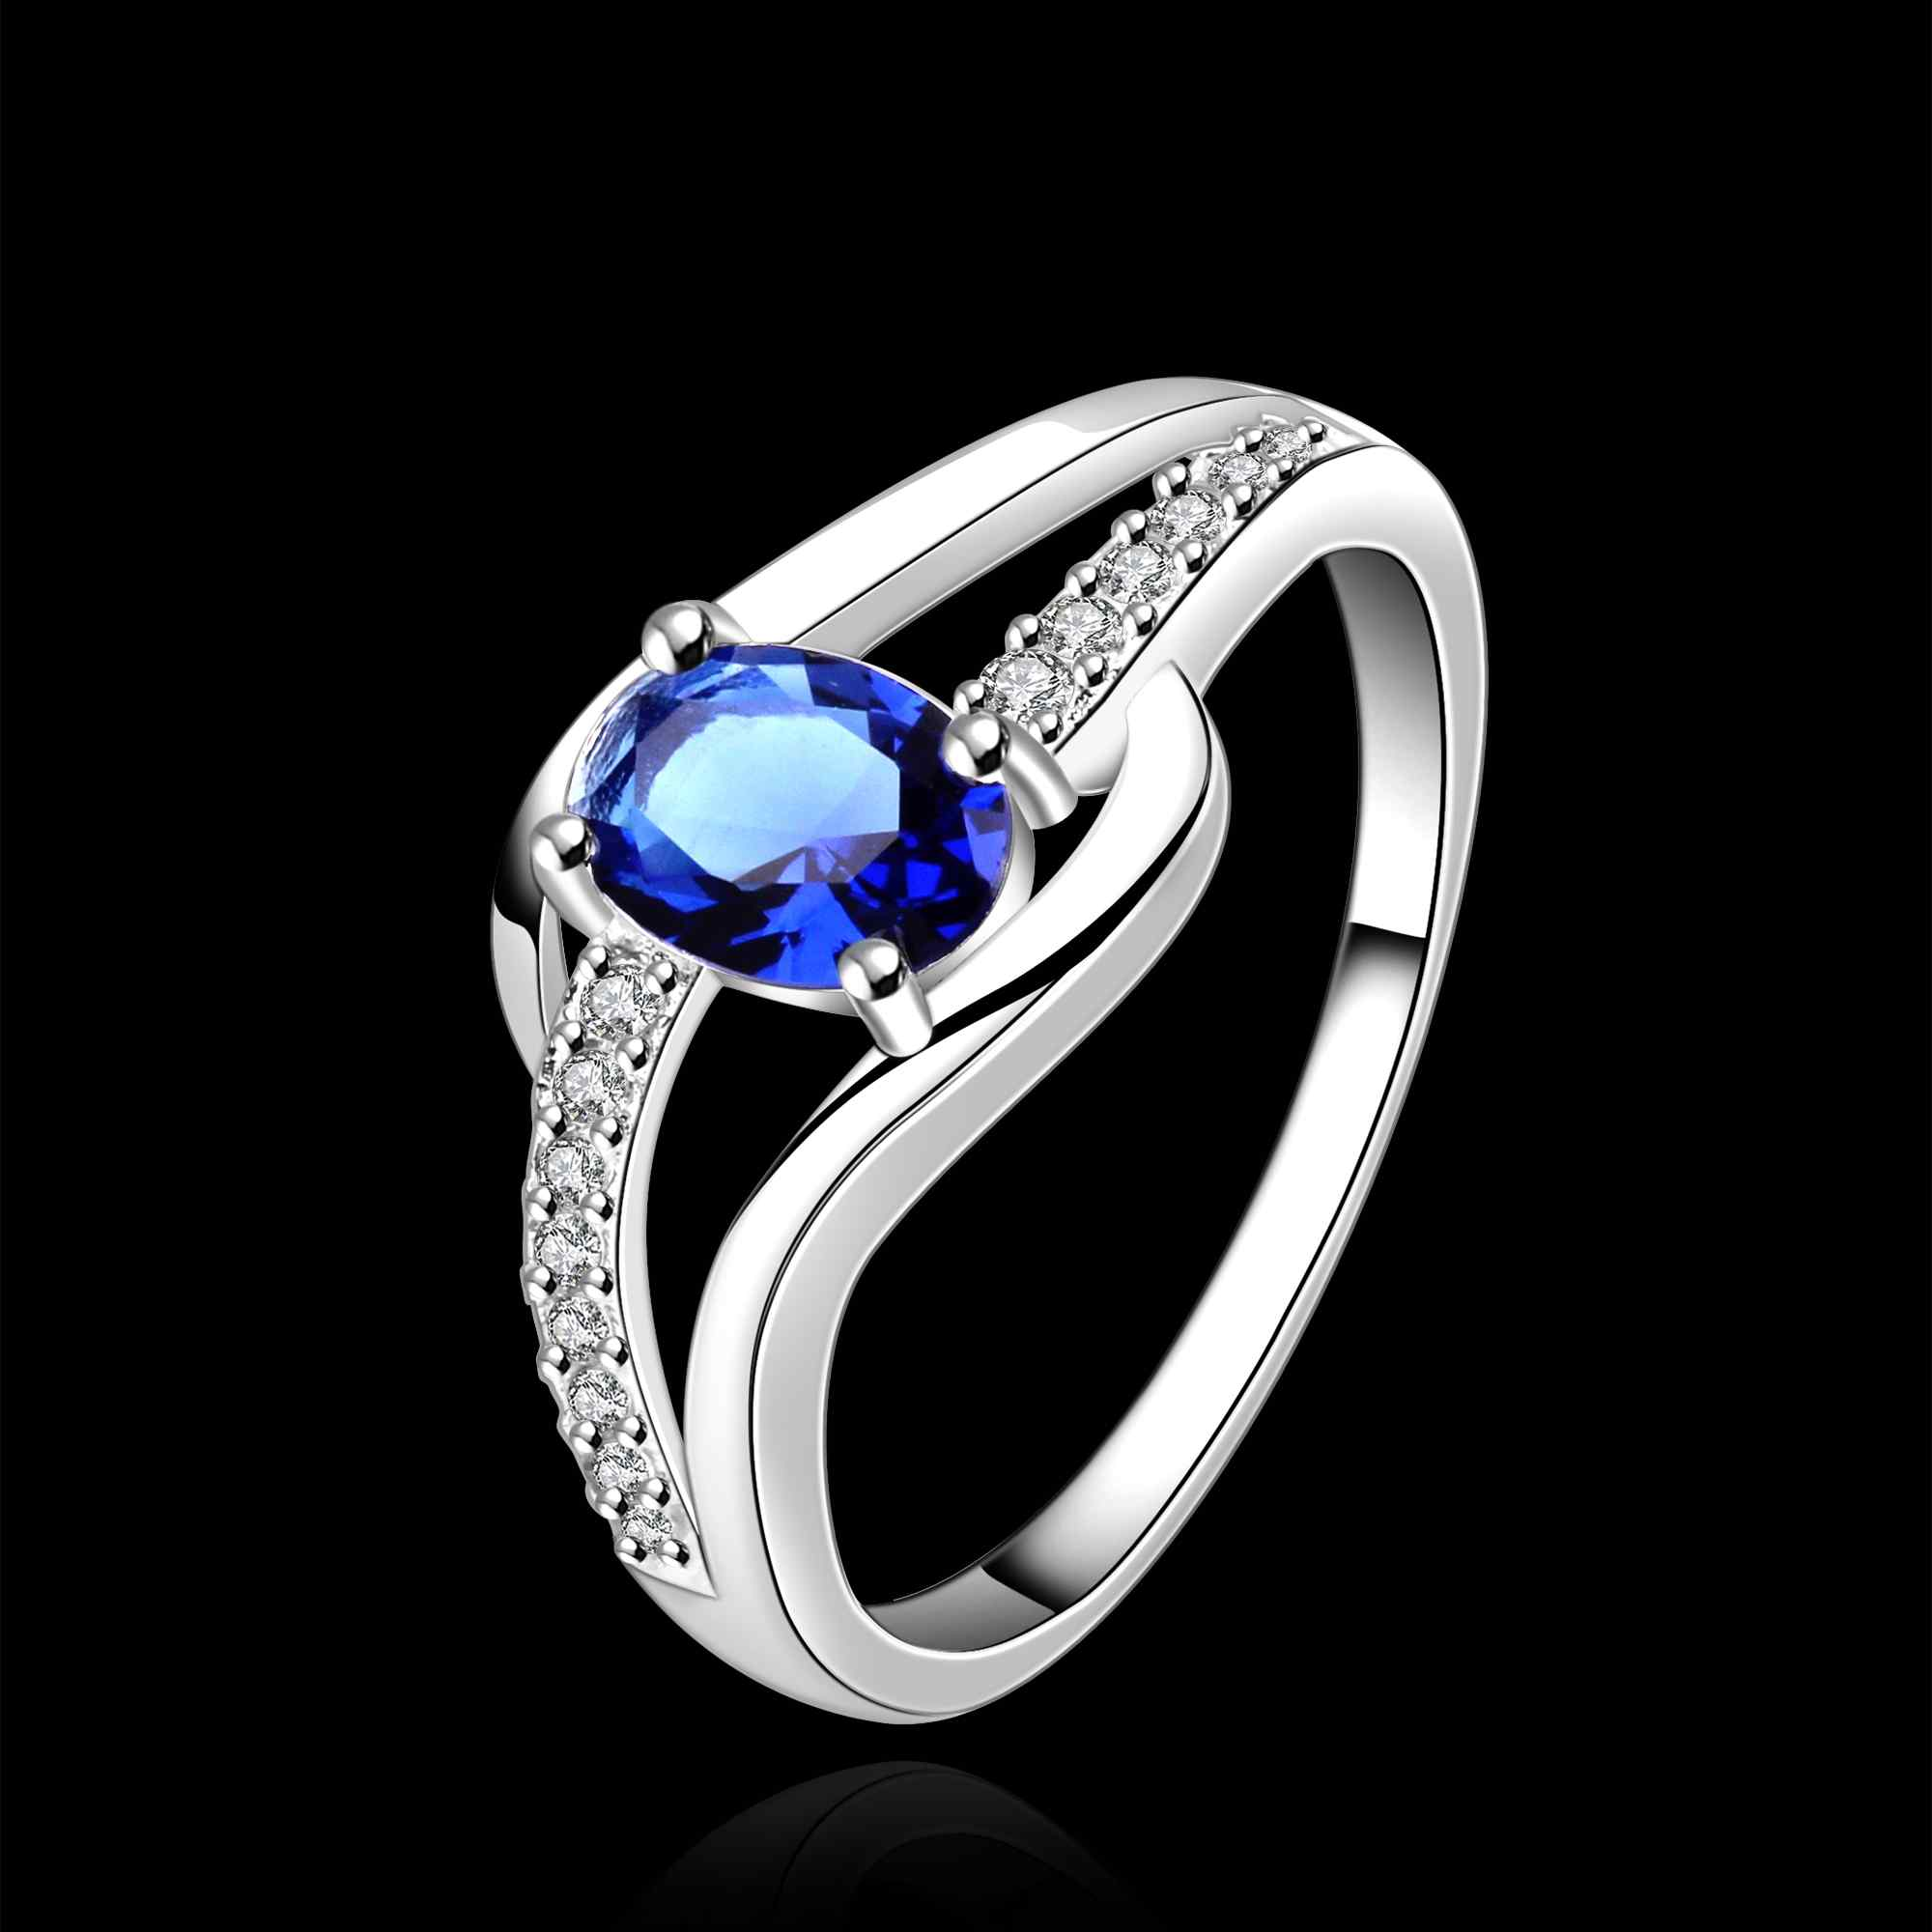 bazaar rings news uk the of blue engagement brides best royal